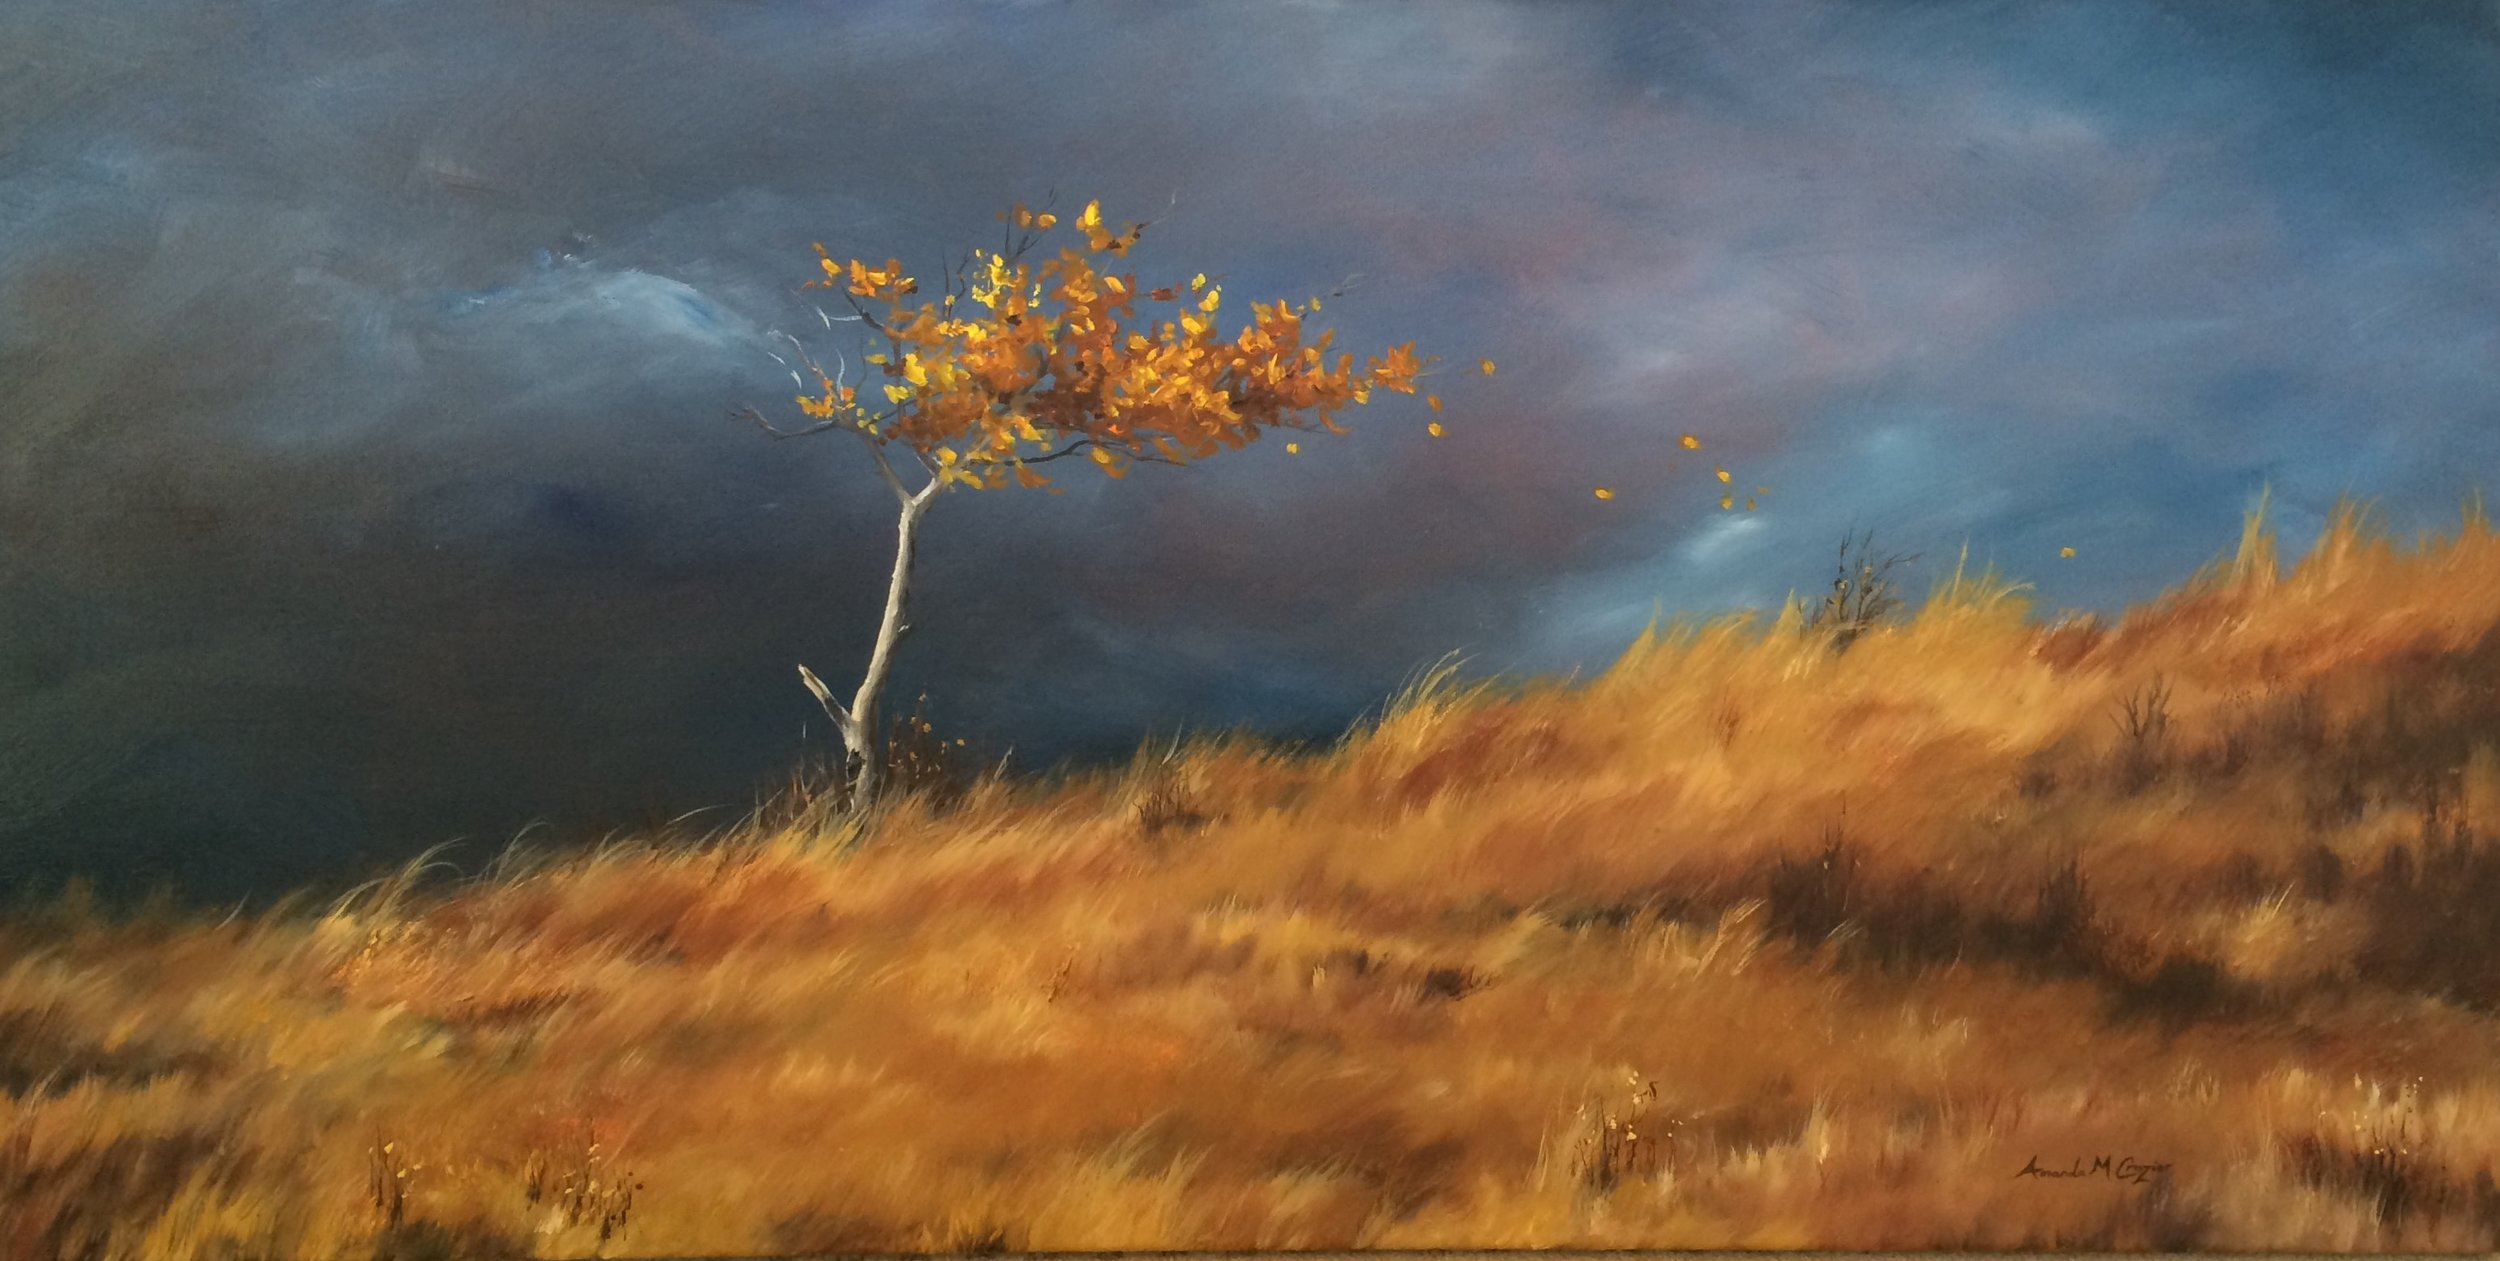 Storms of Autumn